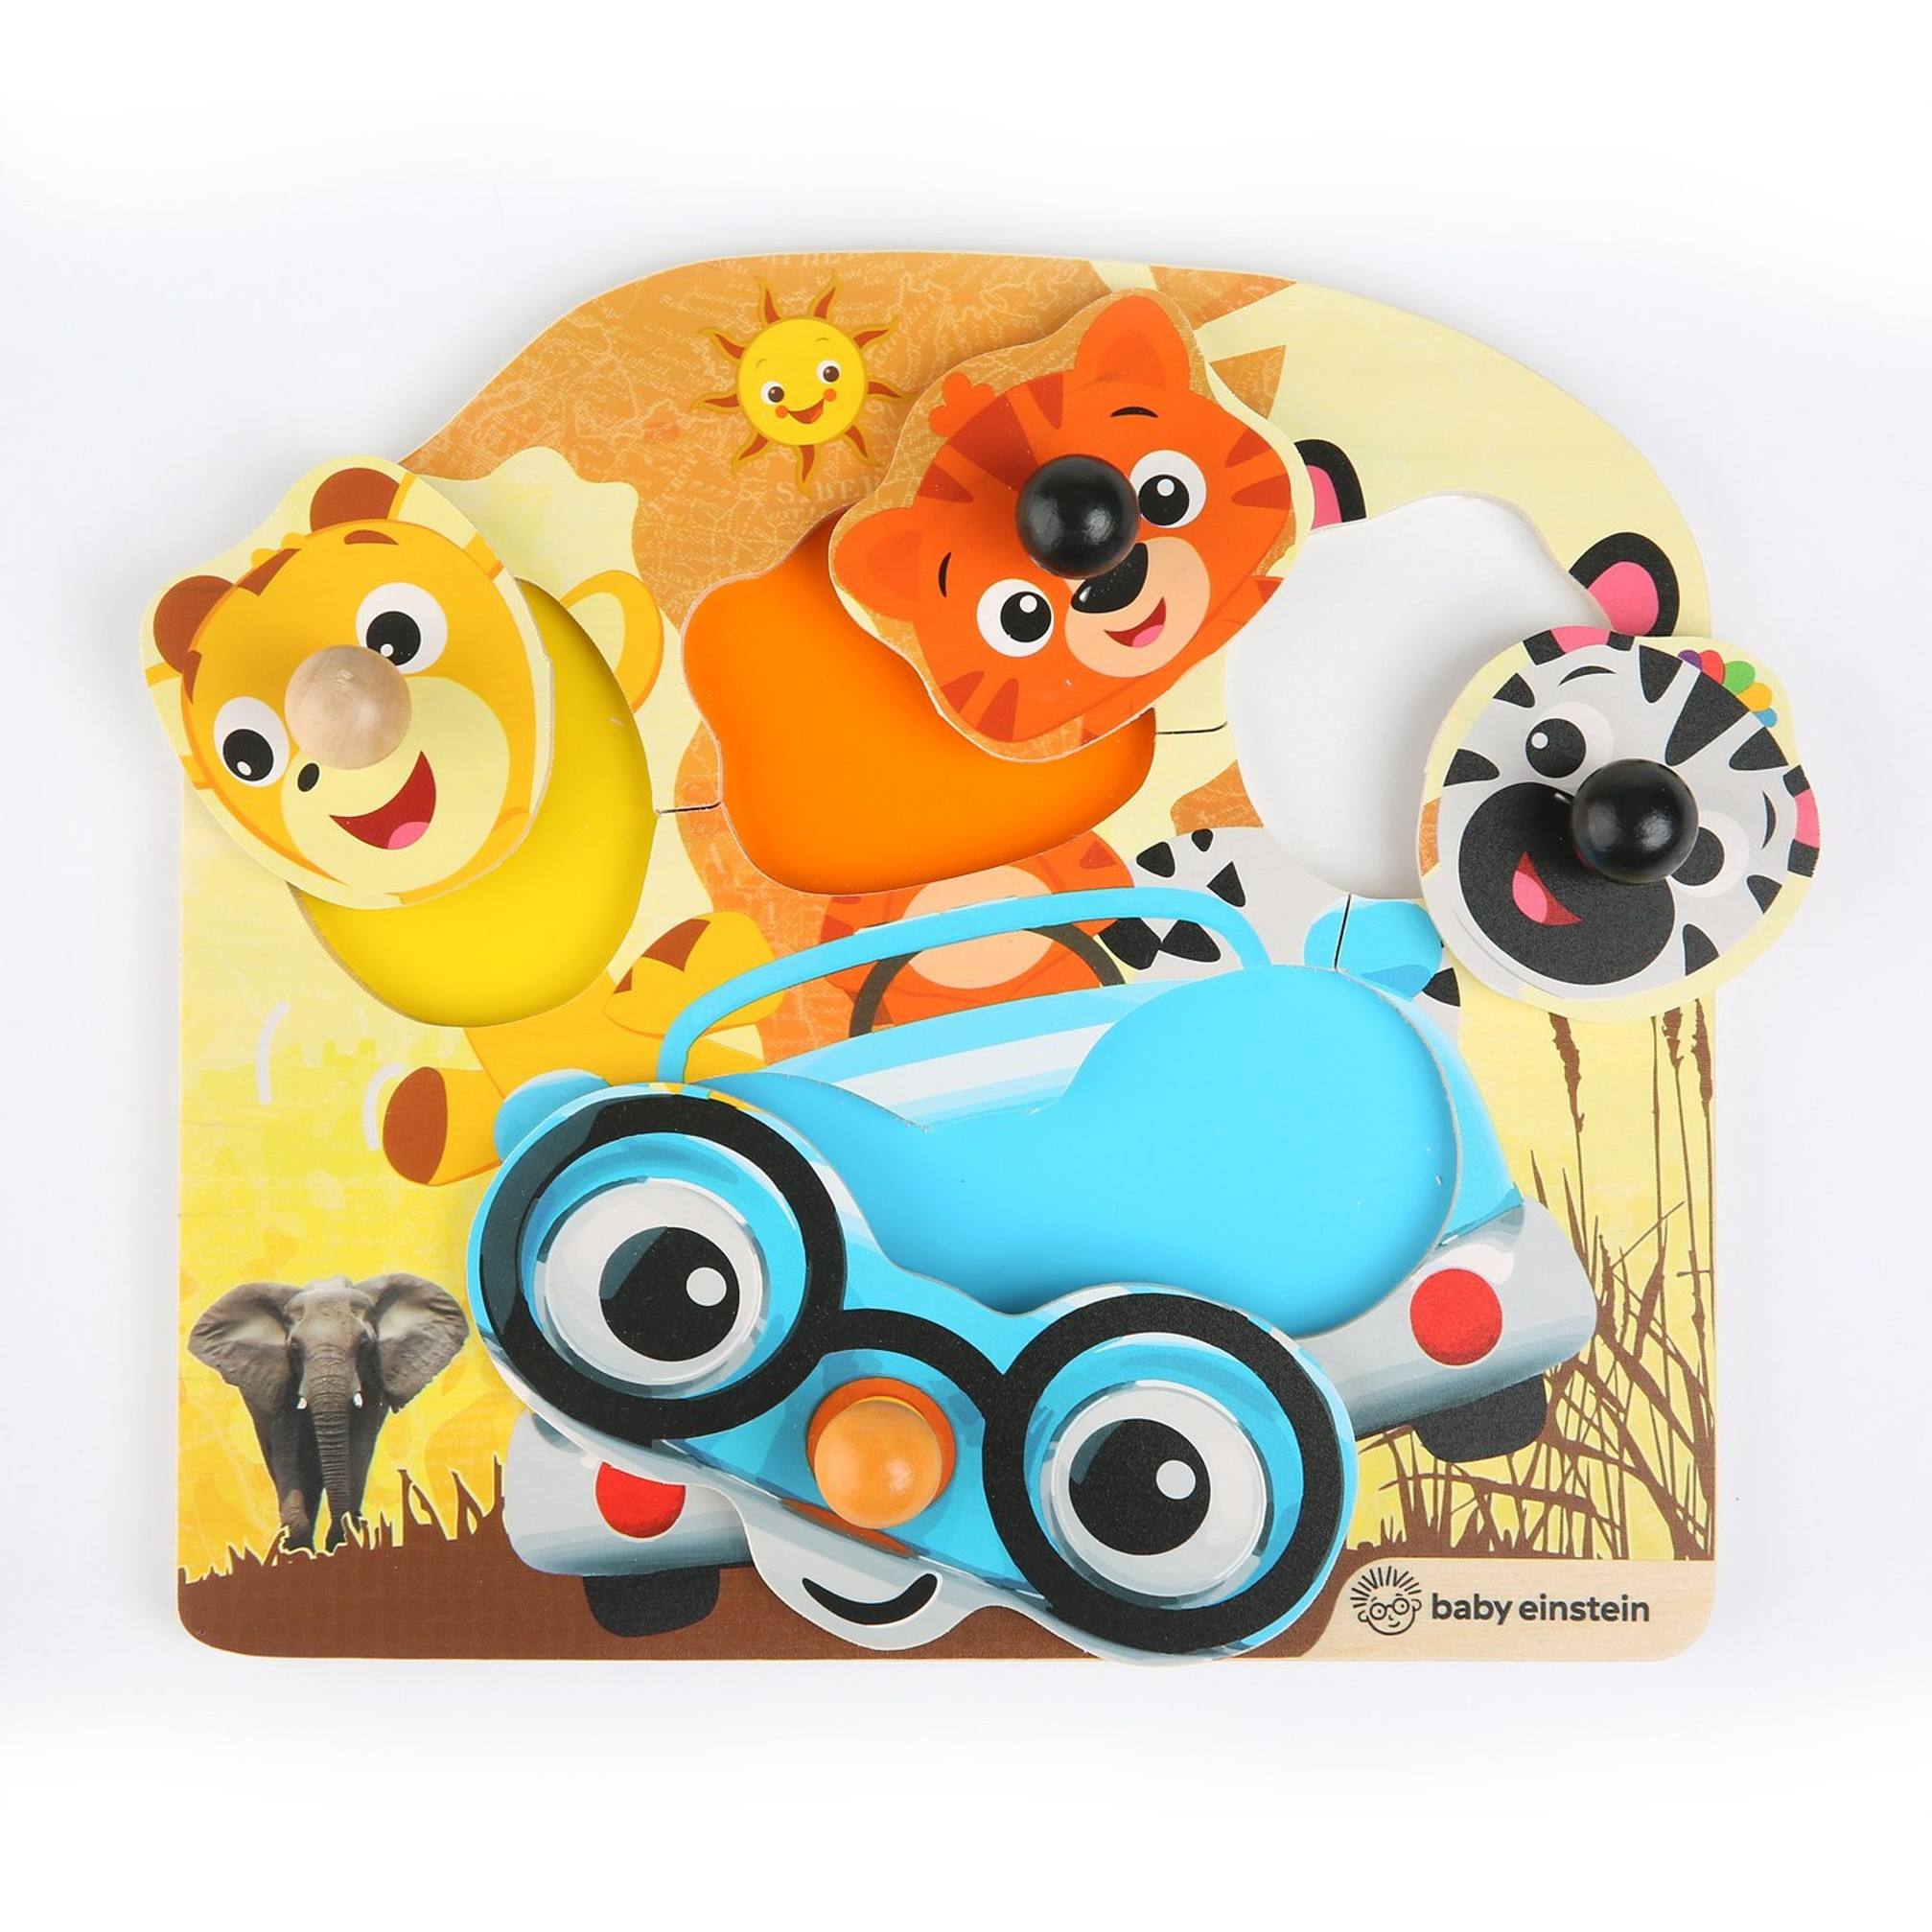 BABY EINSTEIN Hračka dřevěná puzzle Friendy Safari Faces HAPE 12m